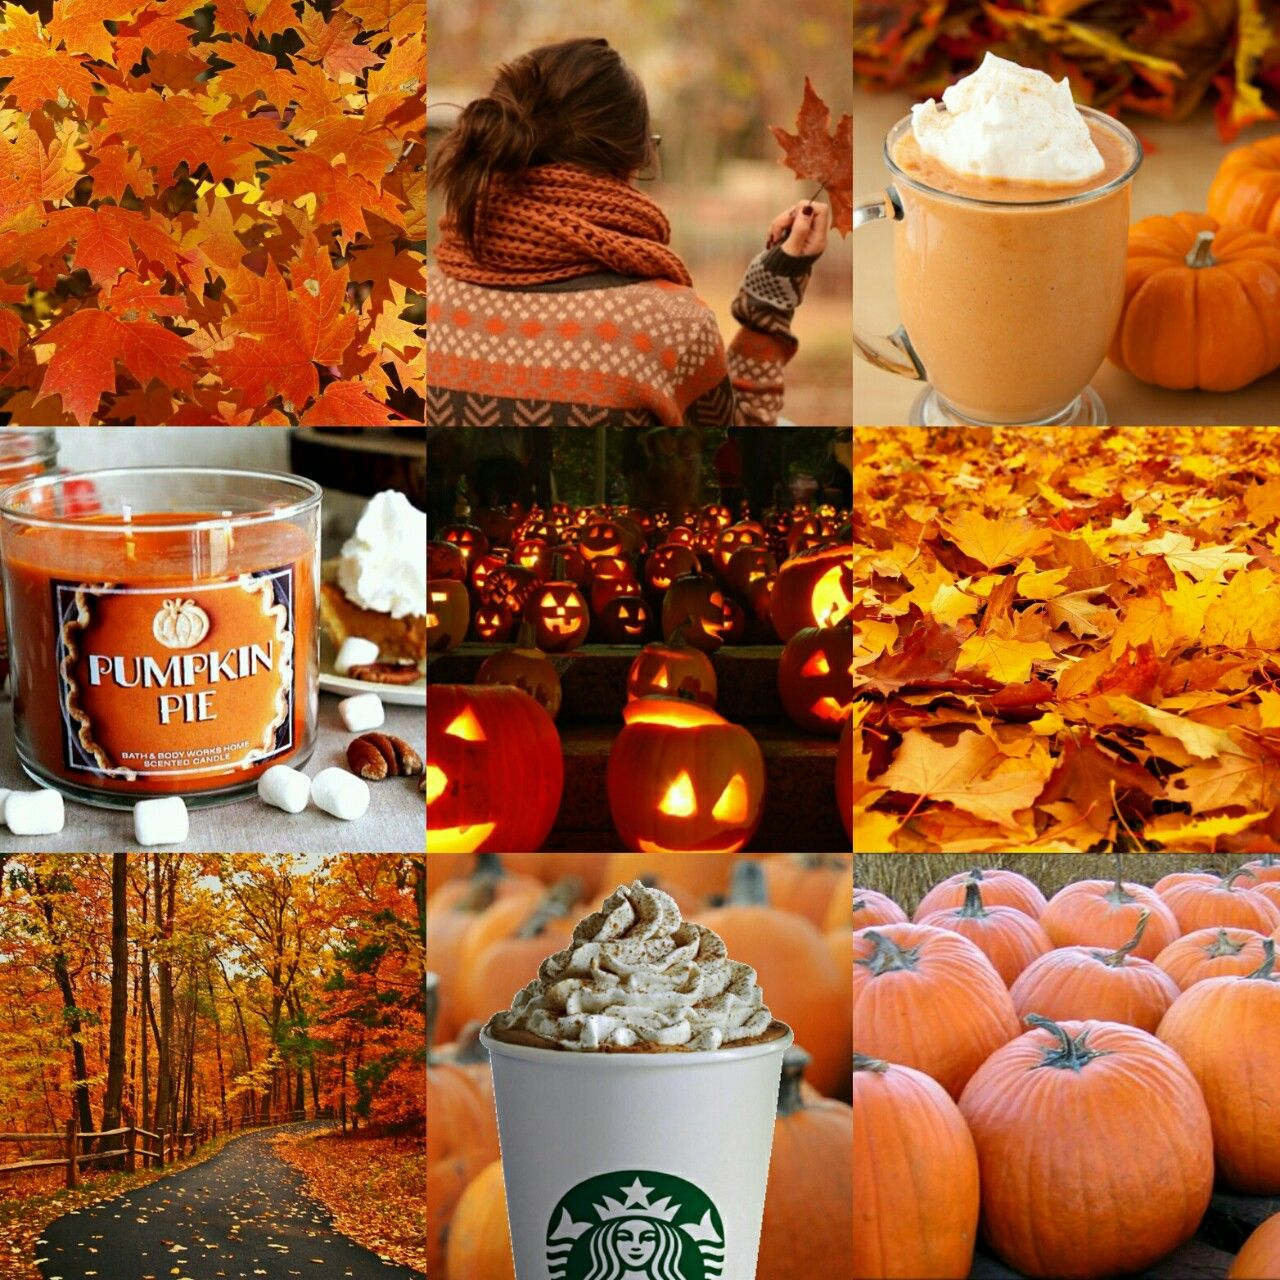 Autumn Aesthetic Tumblr Autumn Aesthetic Tumblr Autumn Aesthetic Autumn Inspiration